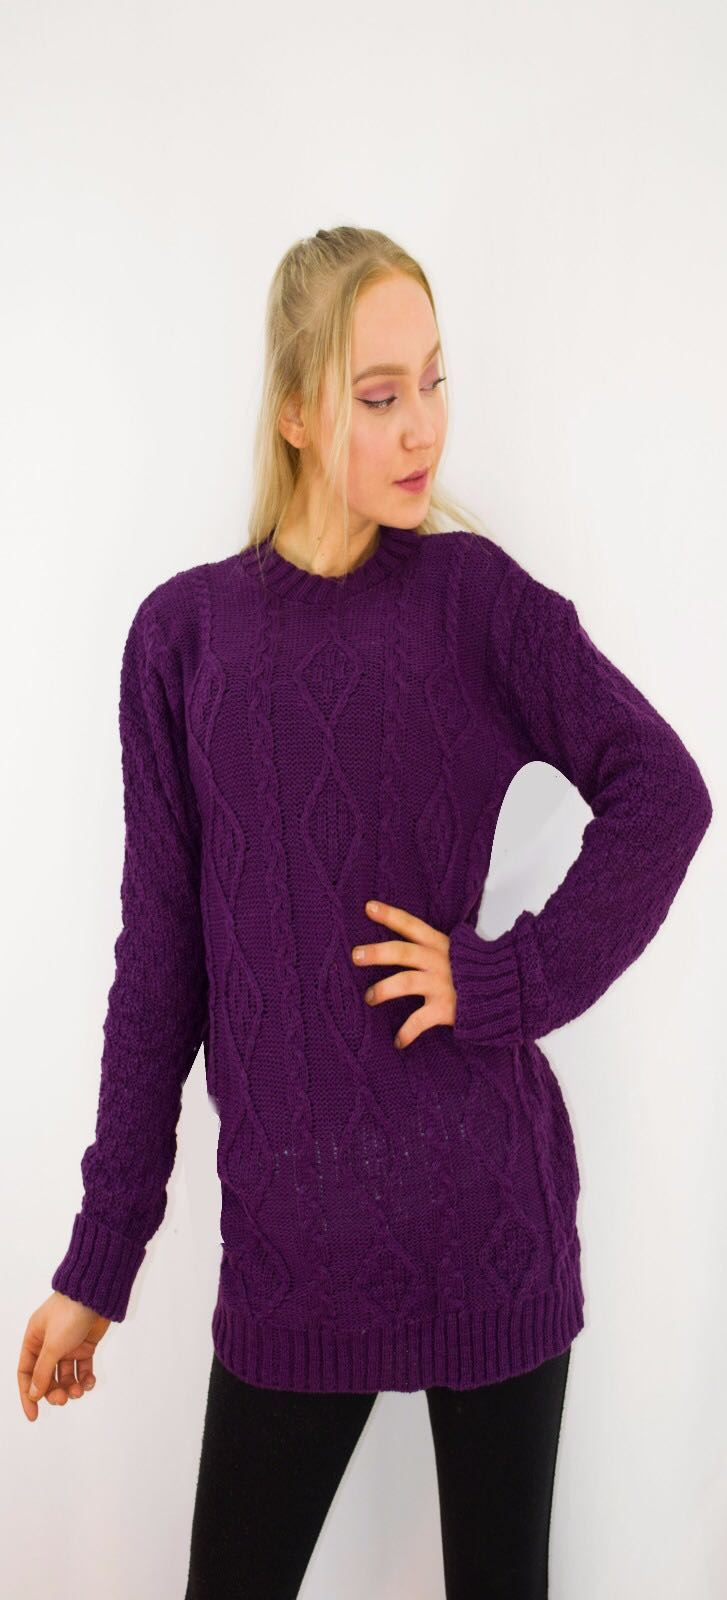 New-Ladies-Long-Manche-Chunky-Cable-Knitted-Jumper-crew-neck-hiver-Sweater-Top miniature 31